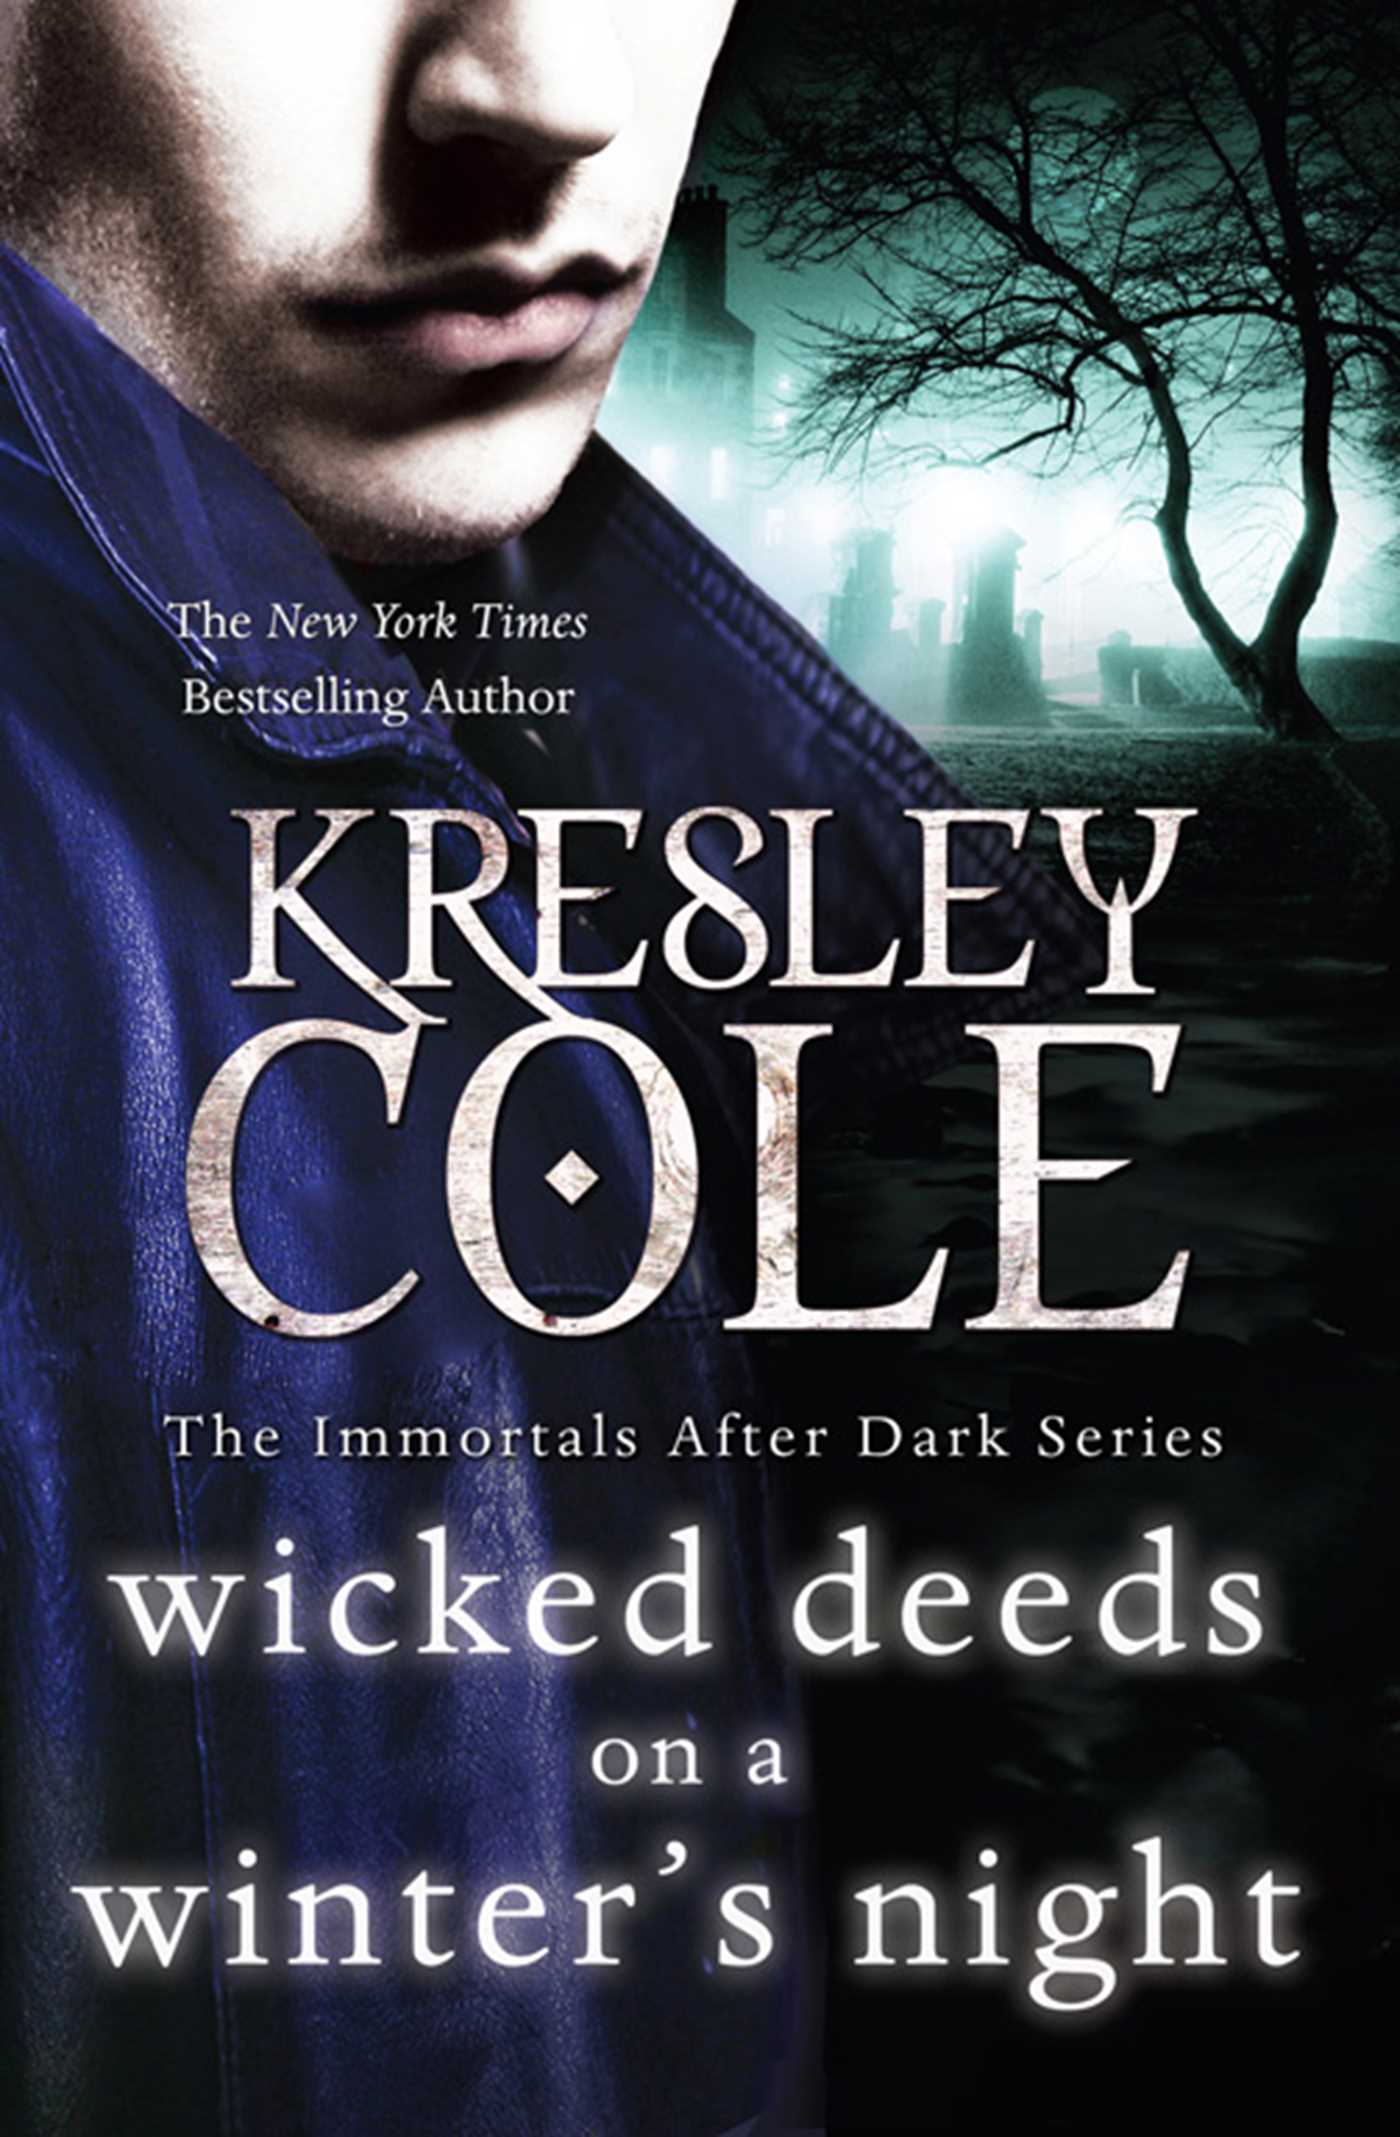 Wicked deeds on a winters night ebook by kresley cole official ebook 9781849834261 author photo jpg kresley cole fandeluxe Images